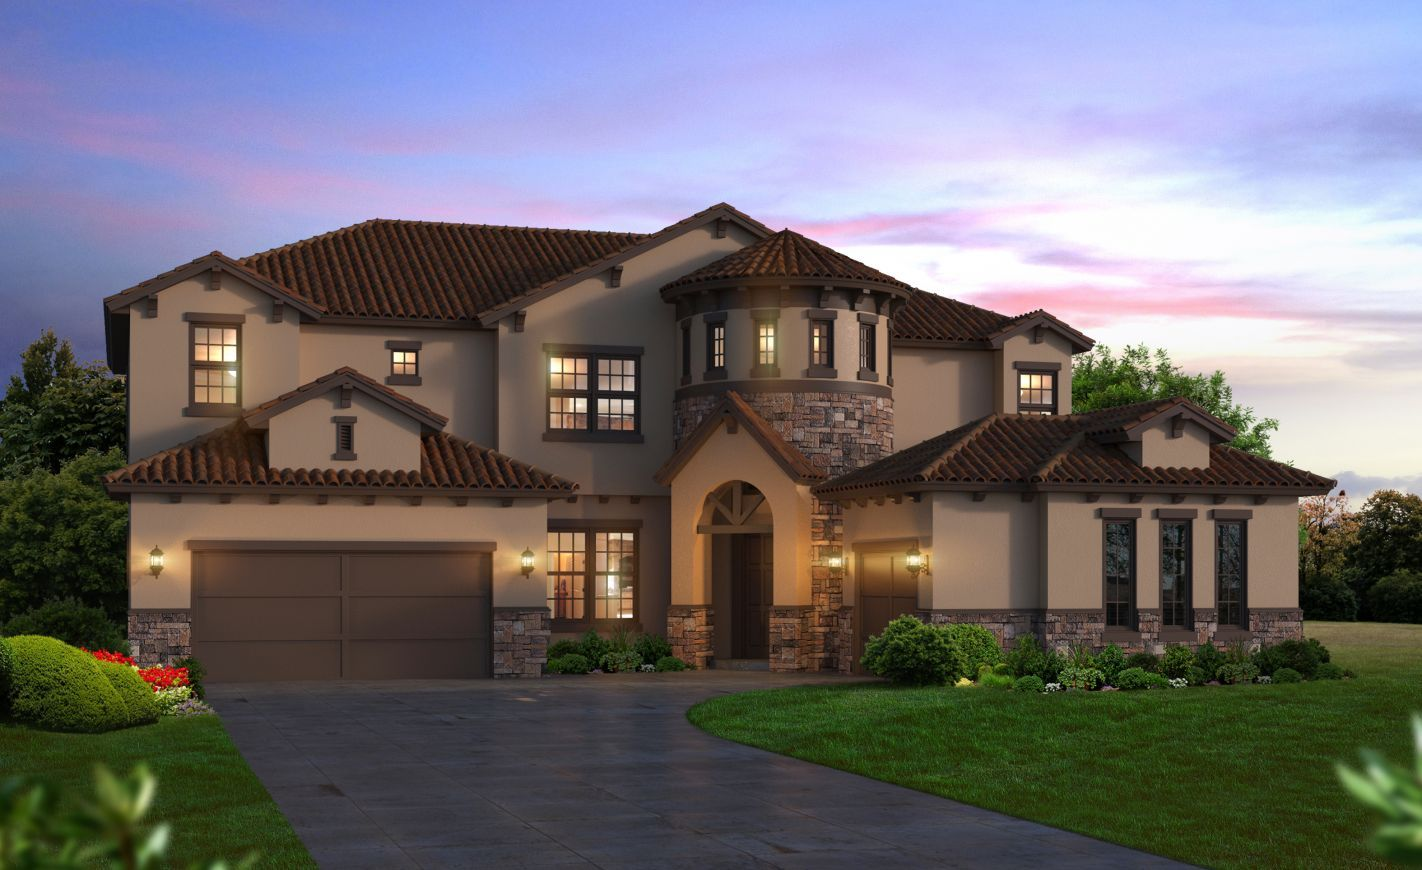 Brooke plan jacksonville florida 32246 brooke plan at for House for sale pictures